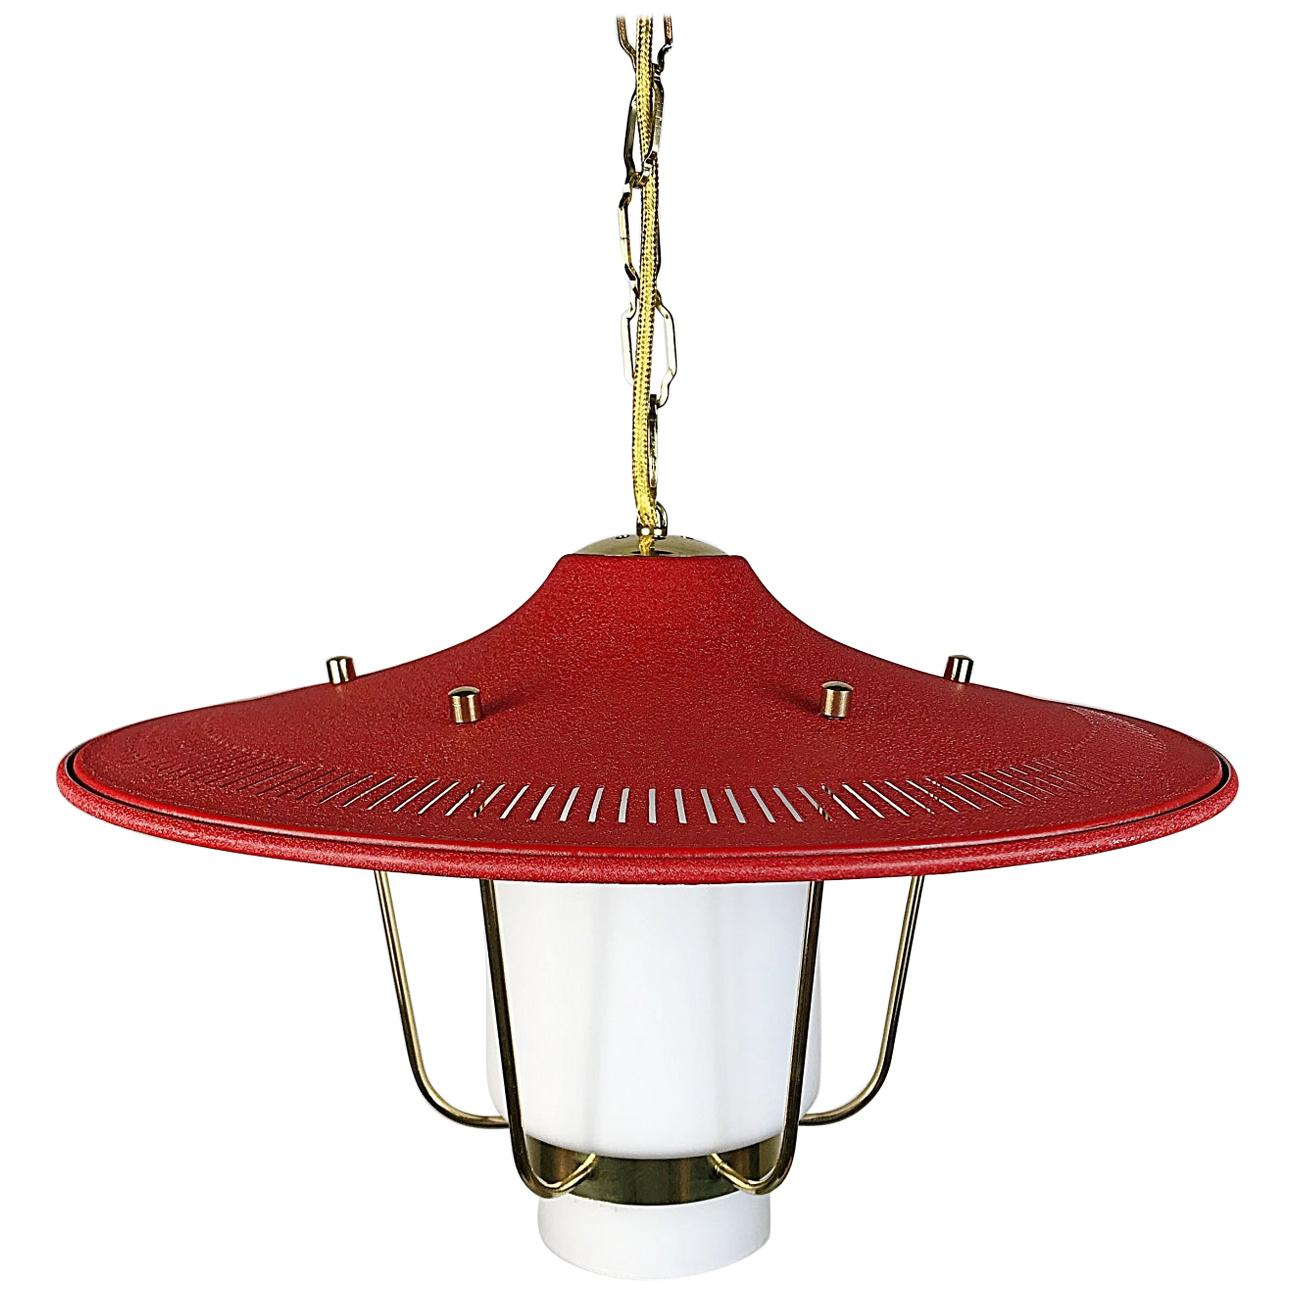 Midcentury Stilnovo Lantern Brass and Red Lacquered Shade, Italy, 1950s